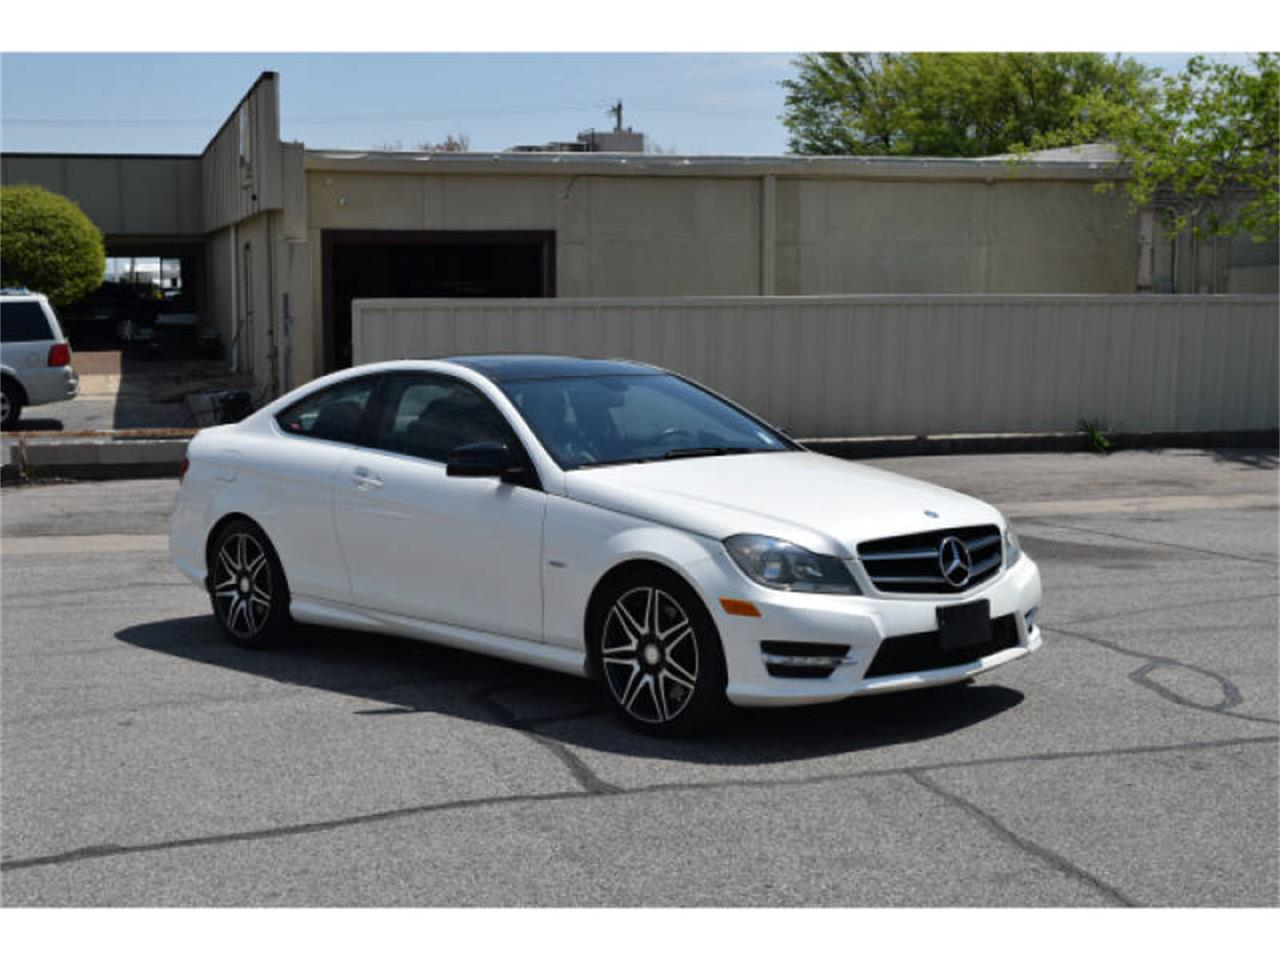 2013 Mercedes-Benz 250C (CC-1354647) for sale in Shawnee, Oklahoma